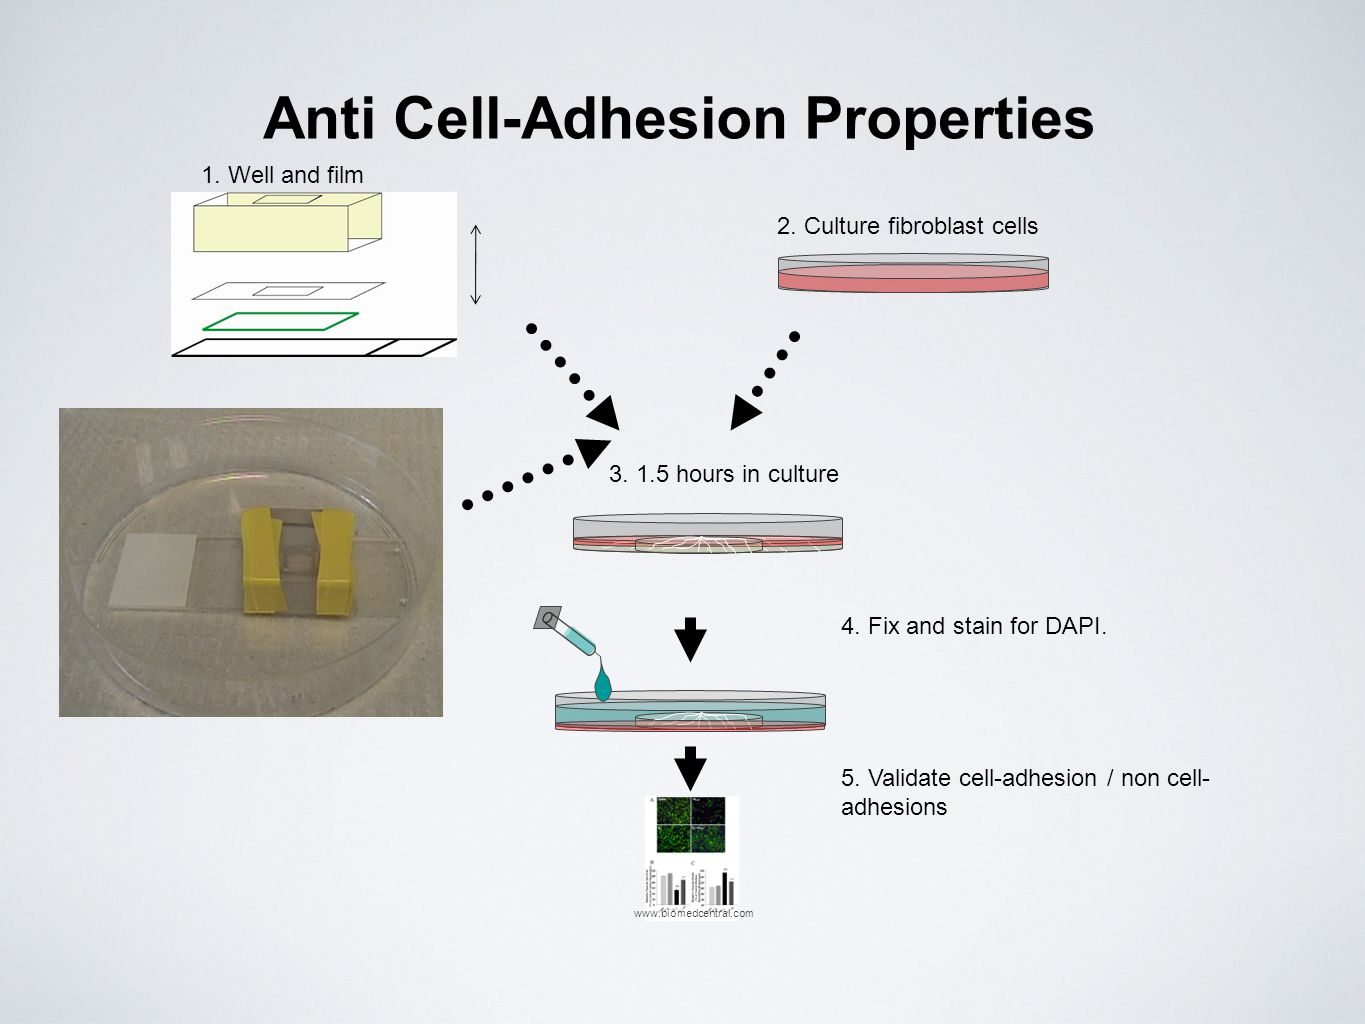 Anti Cell-Adhesion Properties